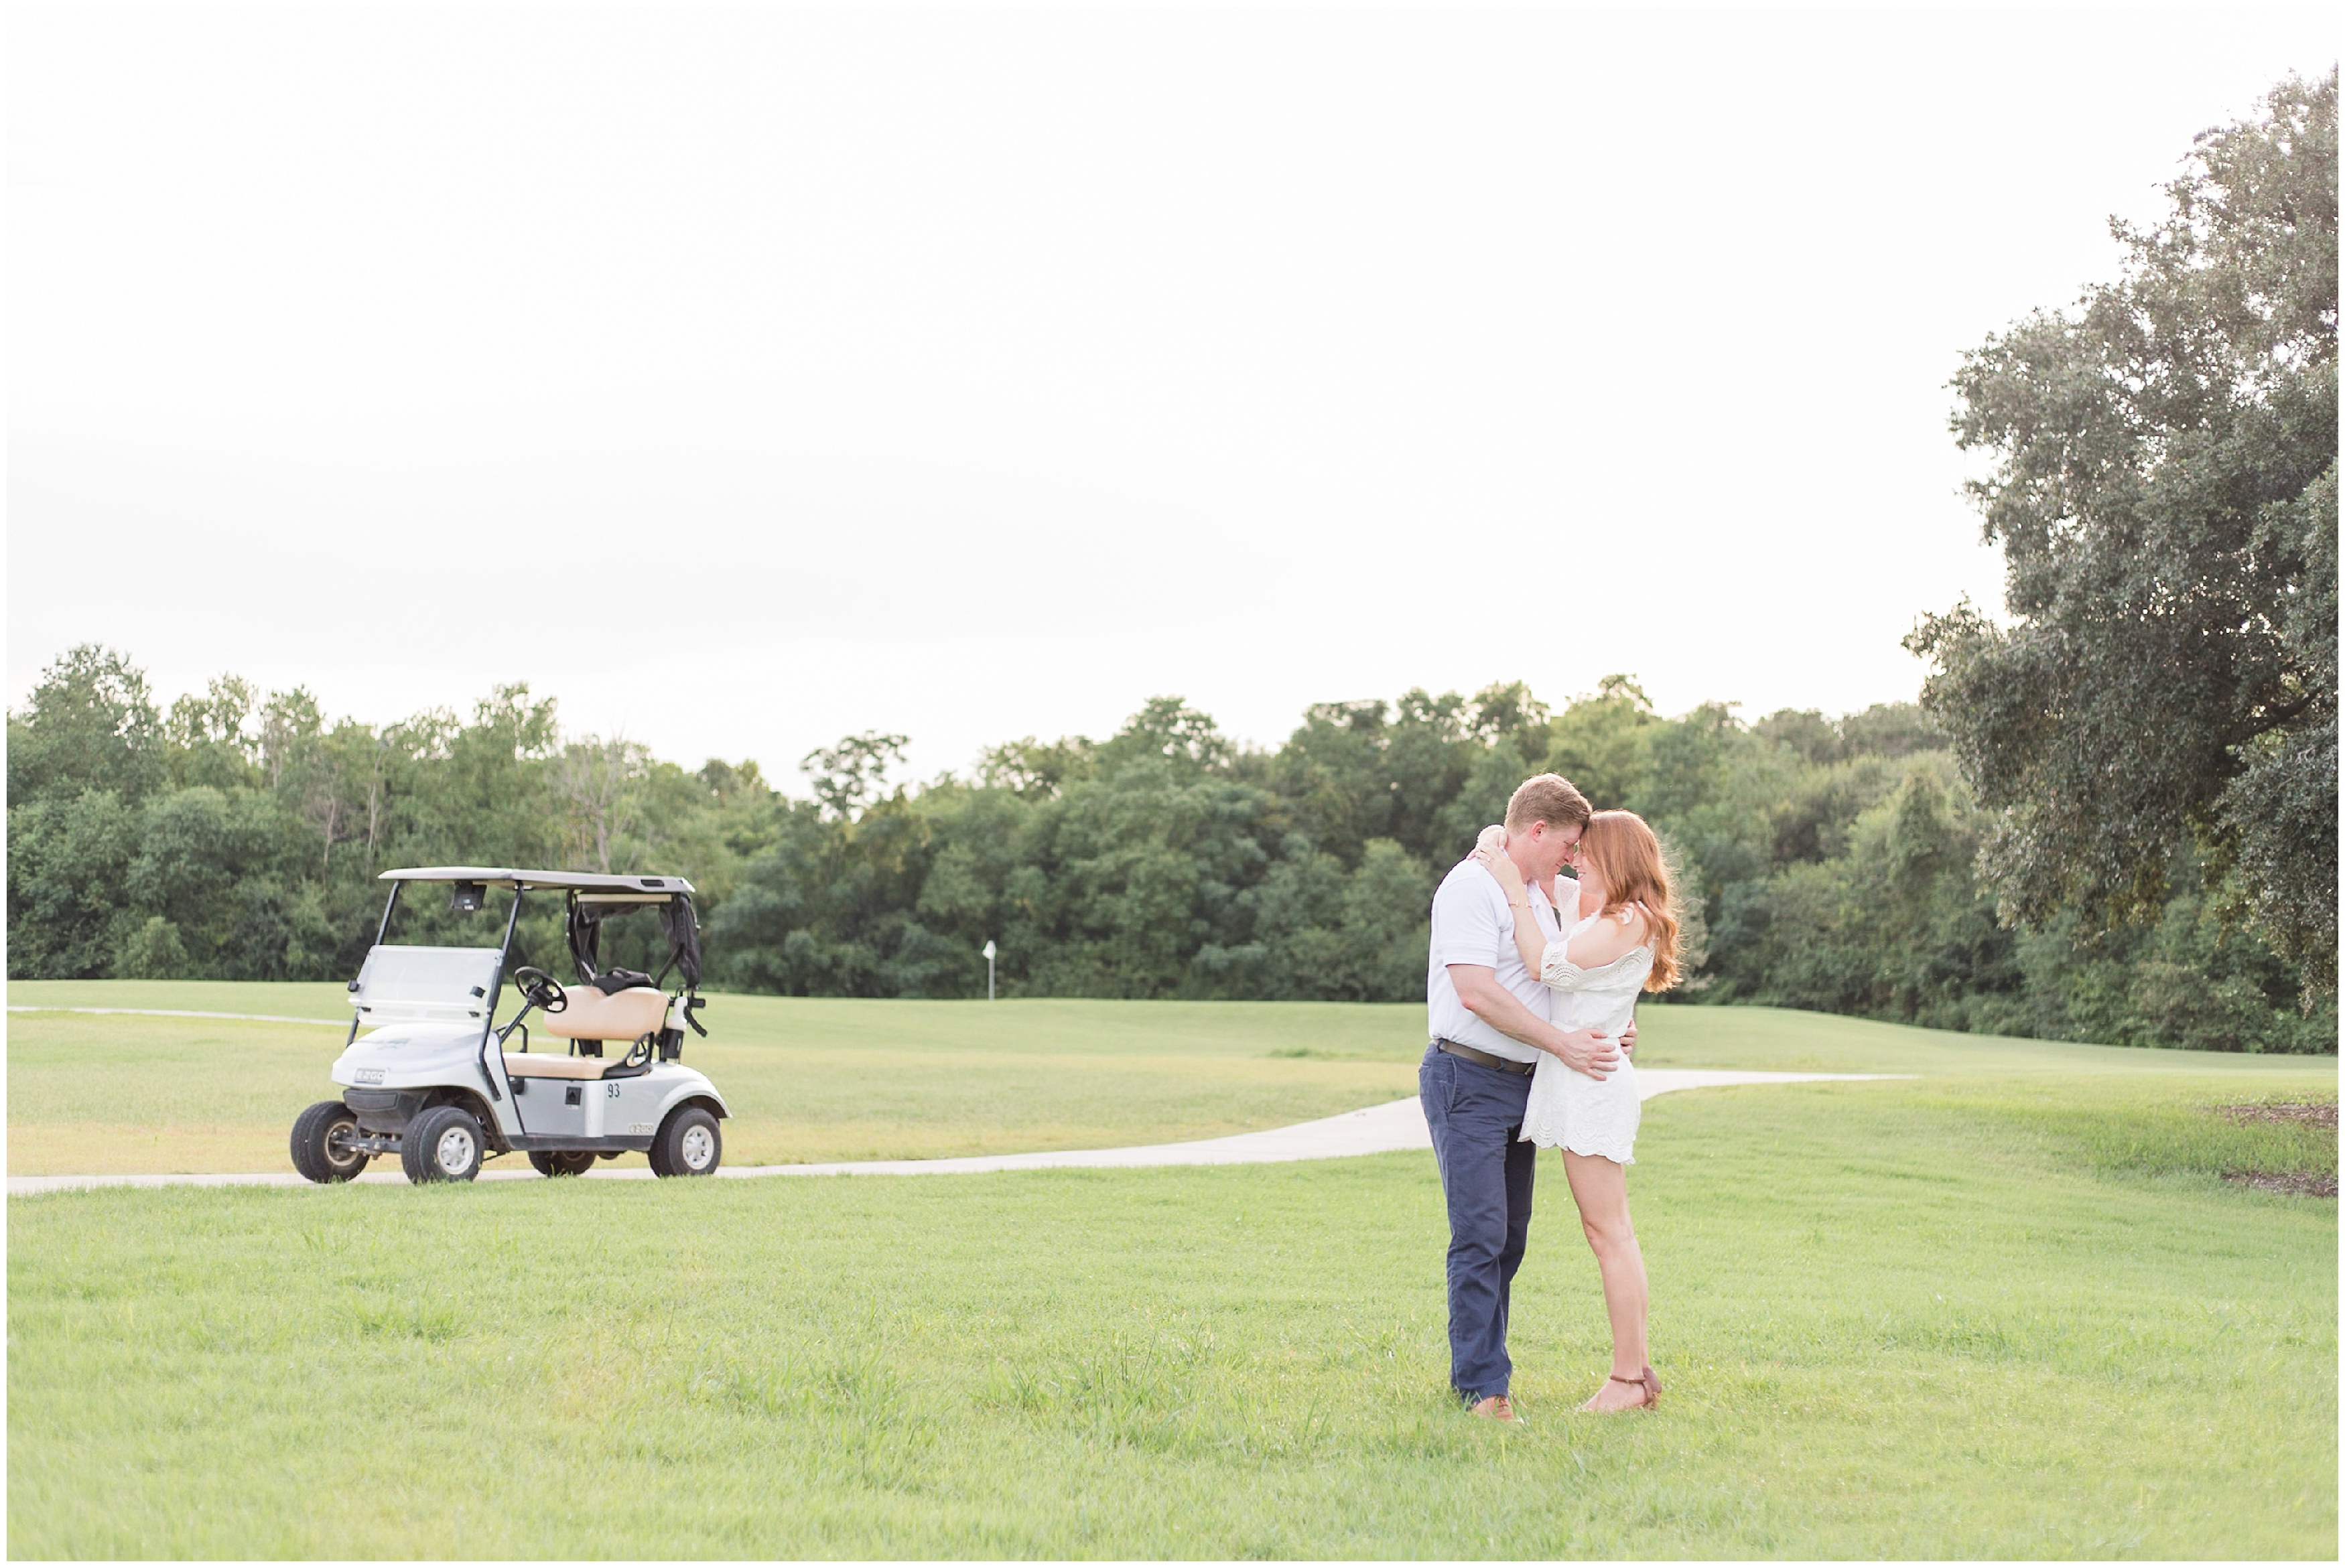 Bayou Oaks Golf Course Engagement Session, Engagement Session, Bayou Oaks Golf Course, Marie Mineo Photography, New Orleans Engagement Photographer, NOLA Engagement Photographer, NOLA Wedding Photographer, New Orleans Wedding Photographer